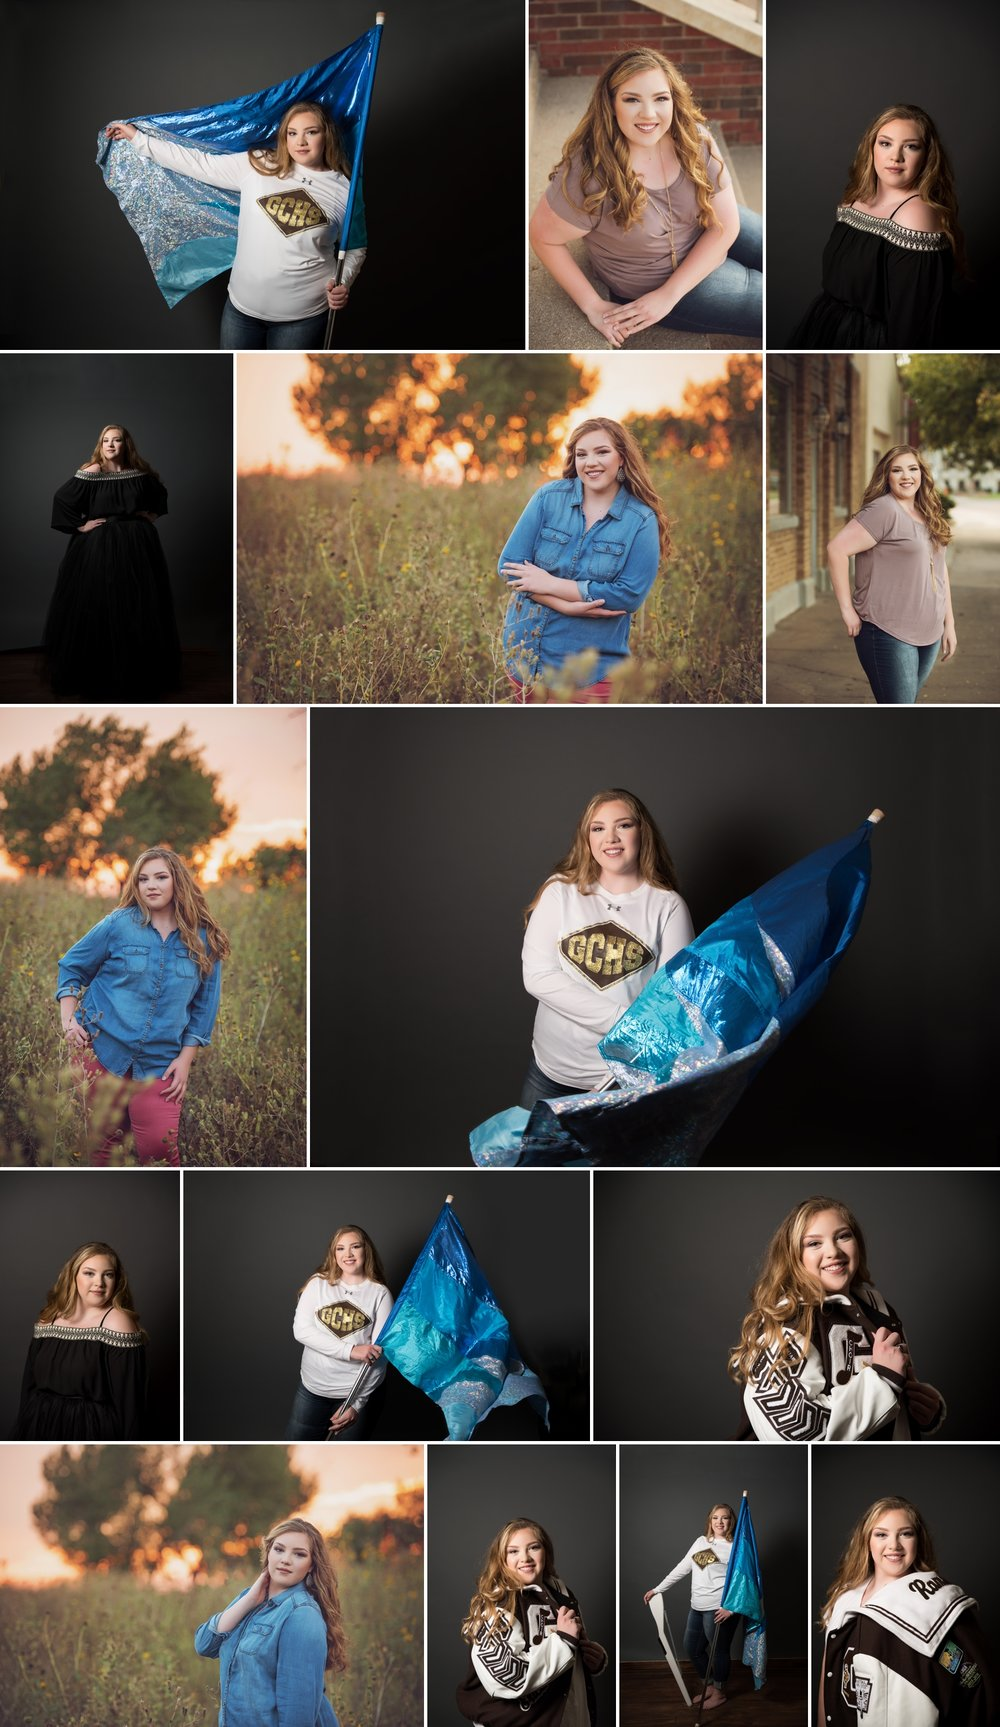 southwest-kansas-senior-photography 3.jpg